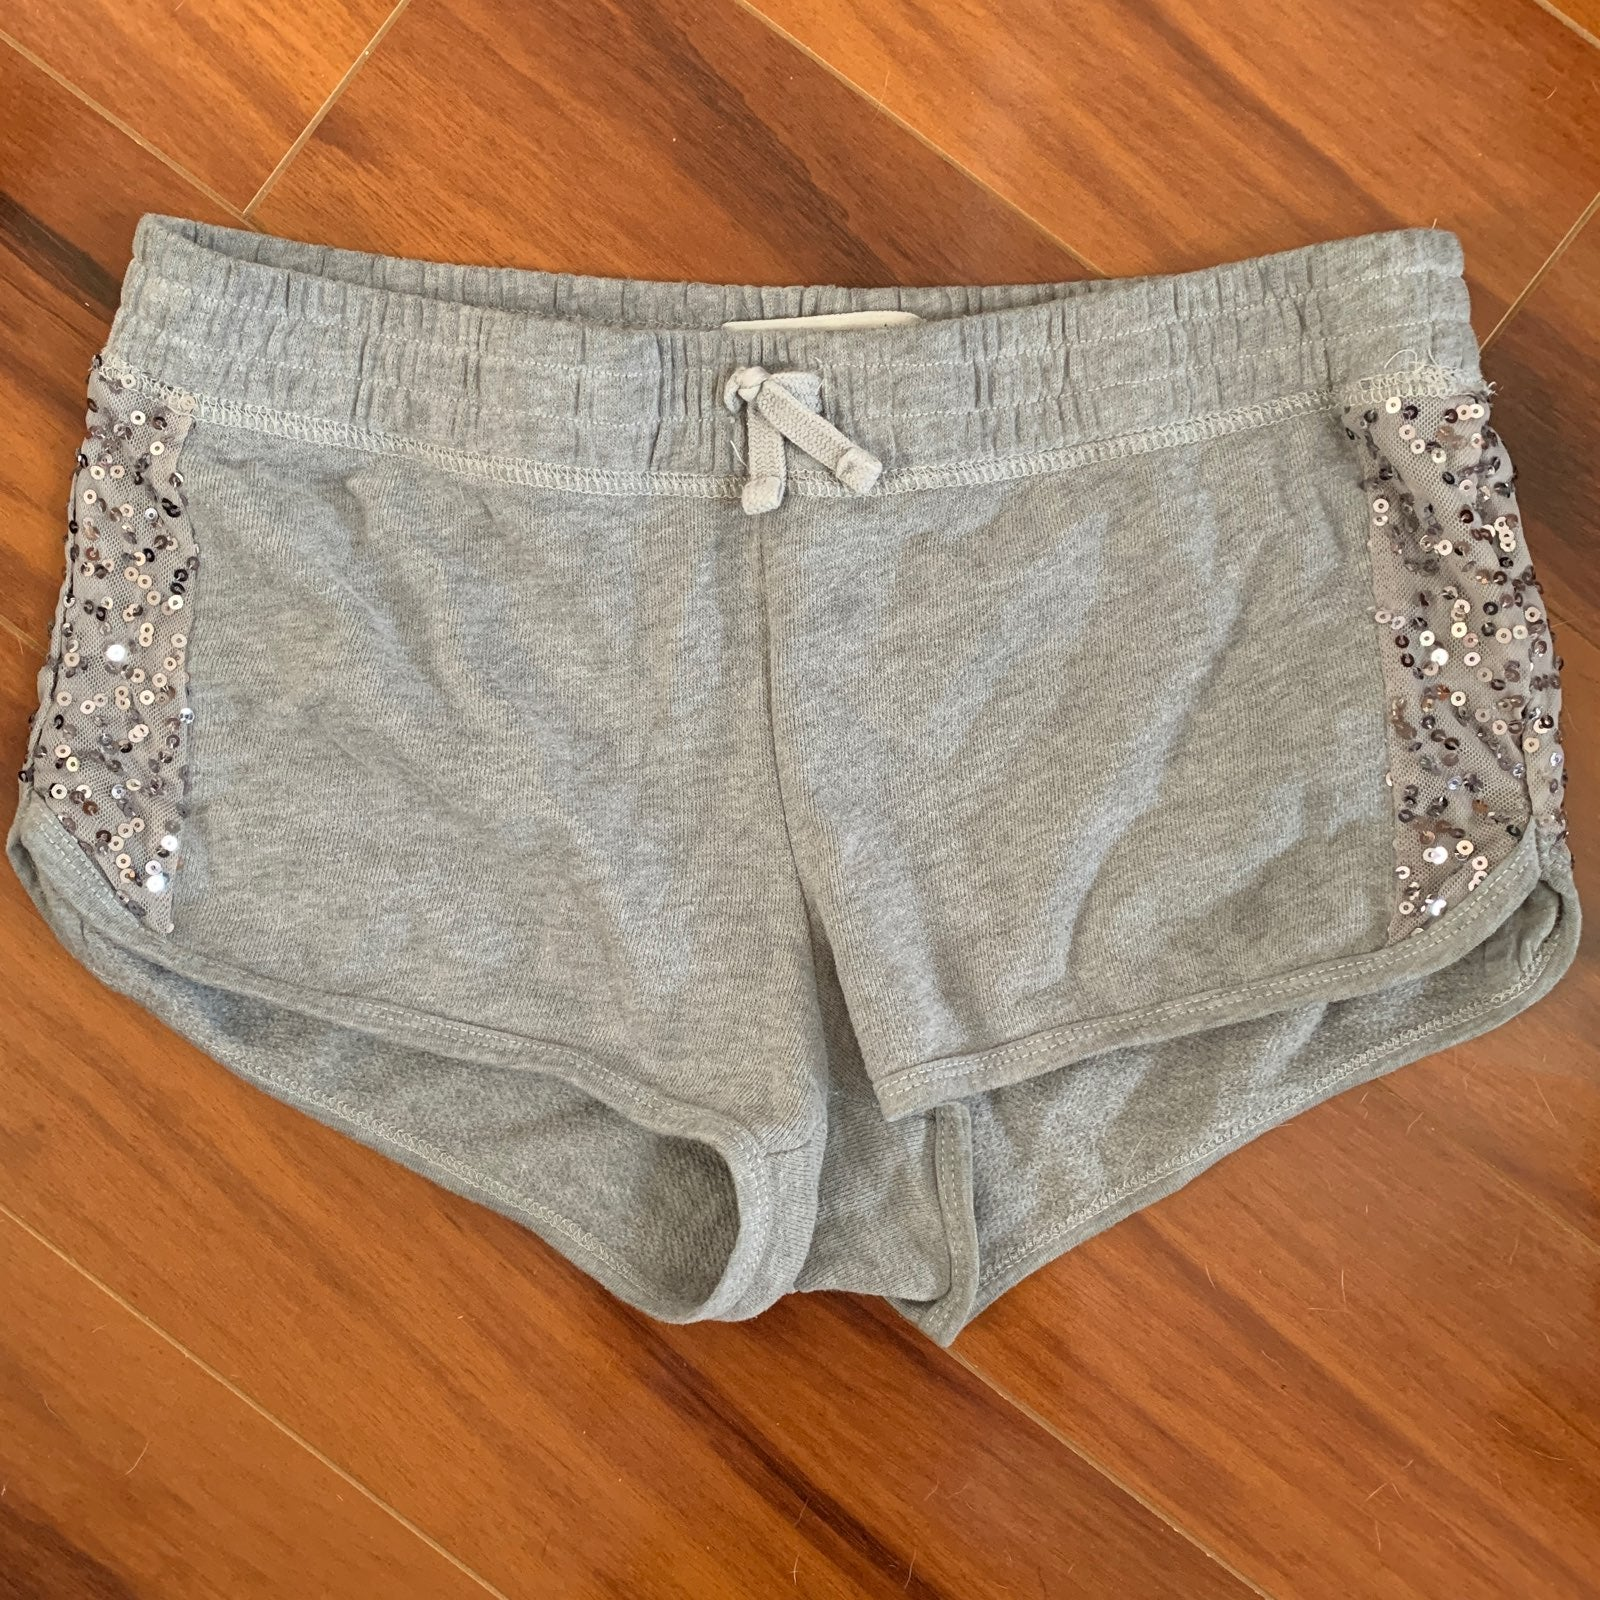 Abercrombie and Fitch hem shorts